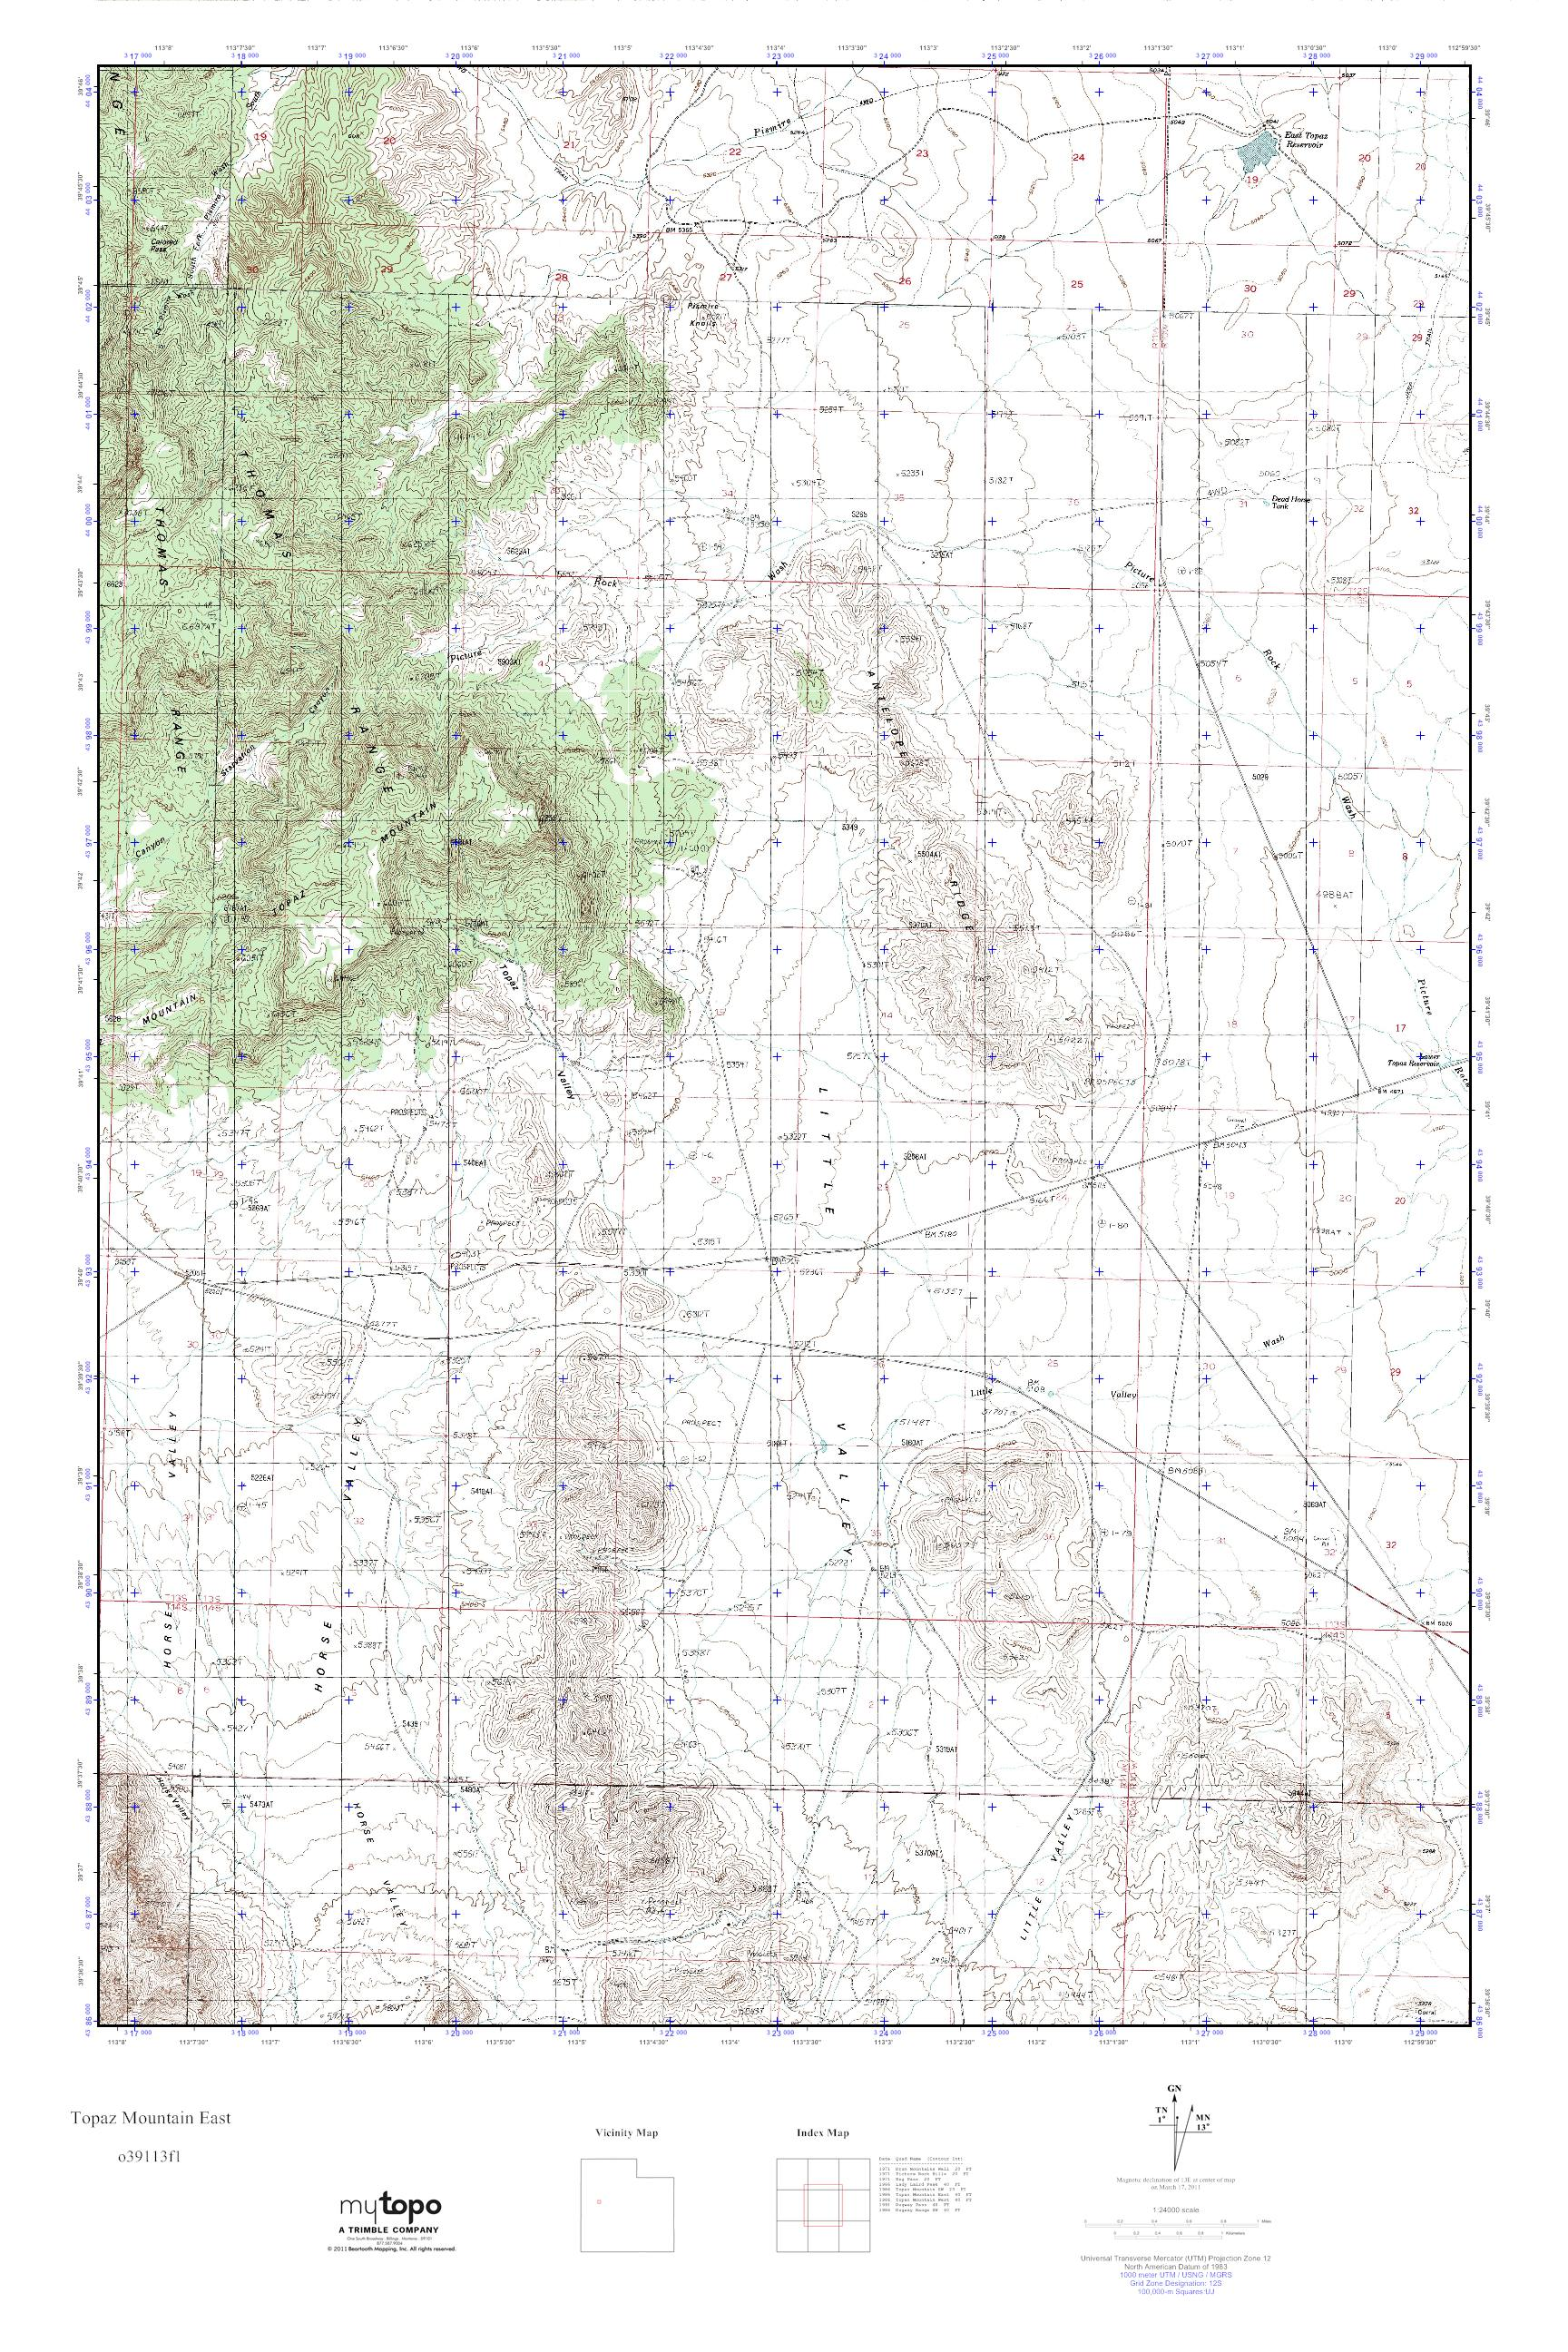 Topaz Mountain Utah Map.Mytopo Topaz Mountain East Utah Usgs Quad Topo Map